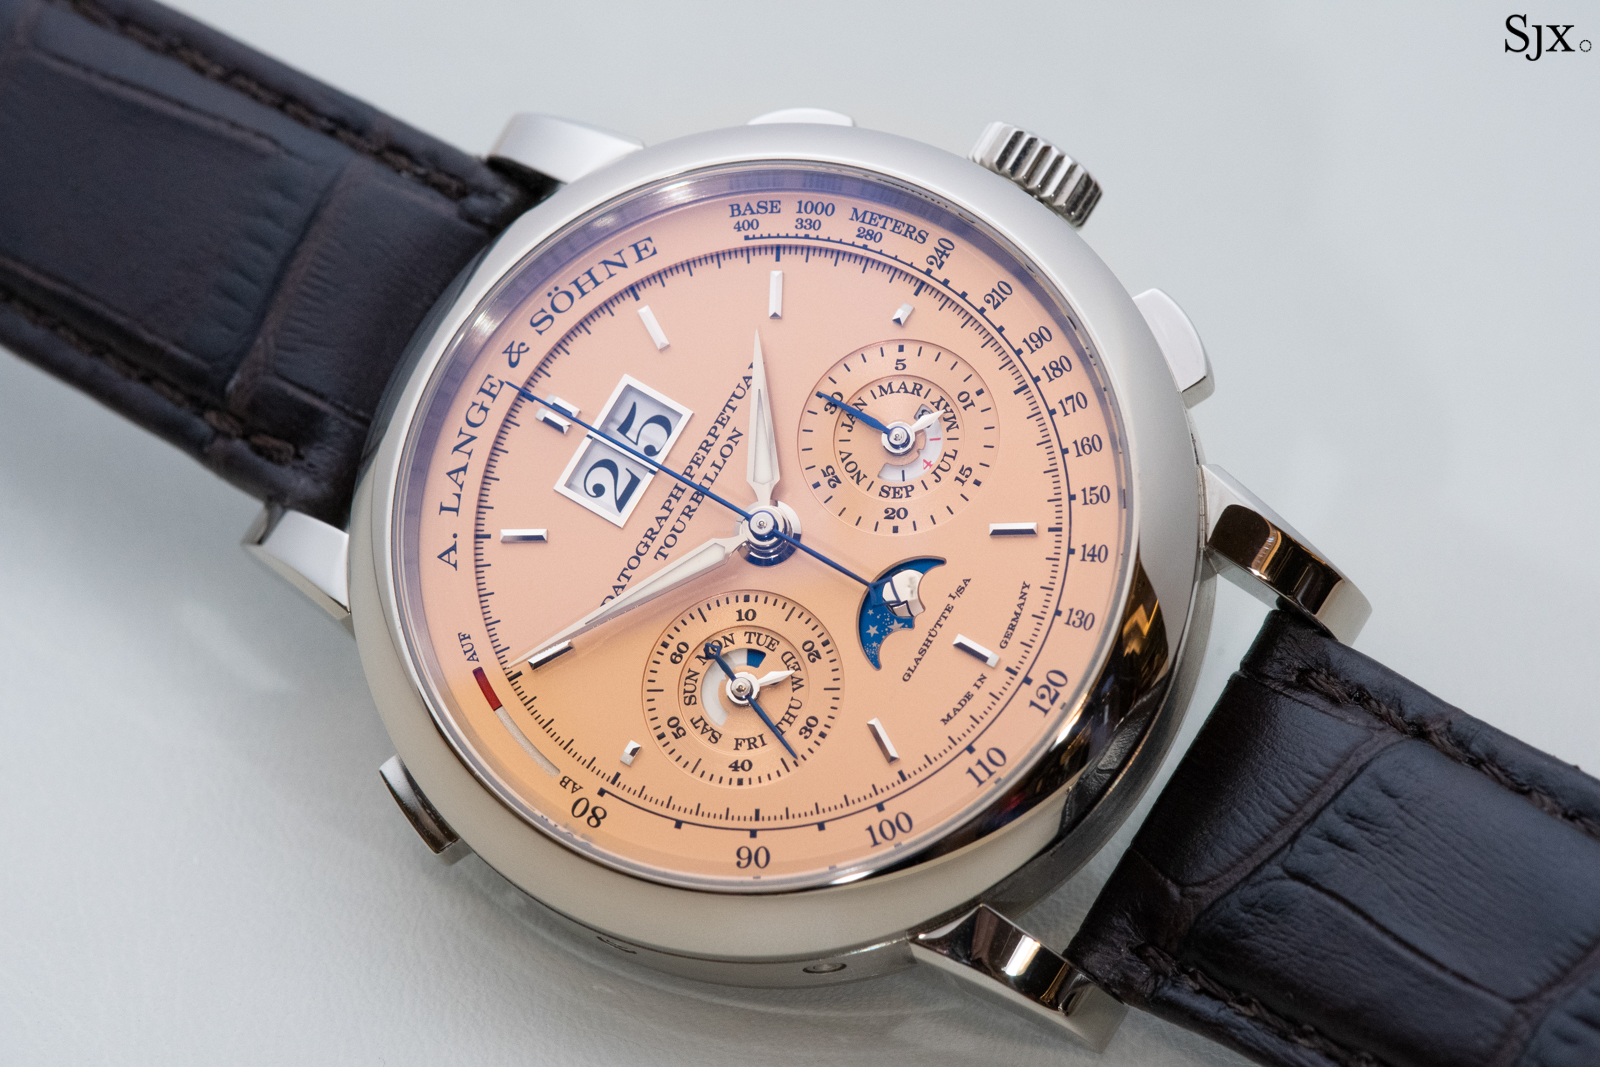 Detailed Look: A. Lange & Söhne Datograph Perpetual Tourbillon Pink Gold Dial | SJX Watches